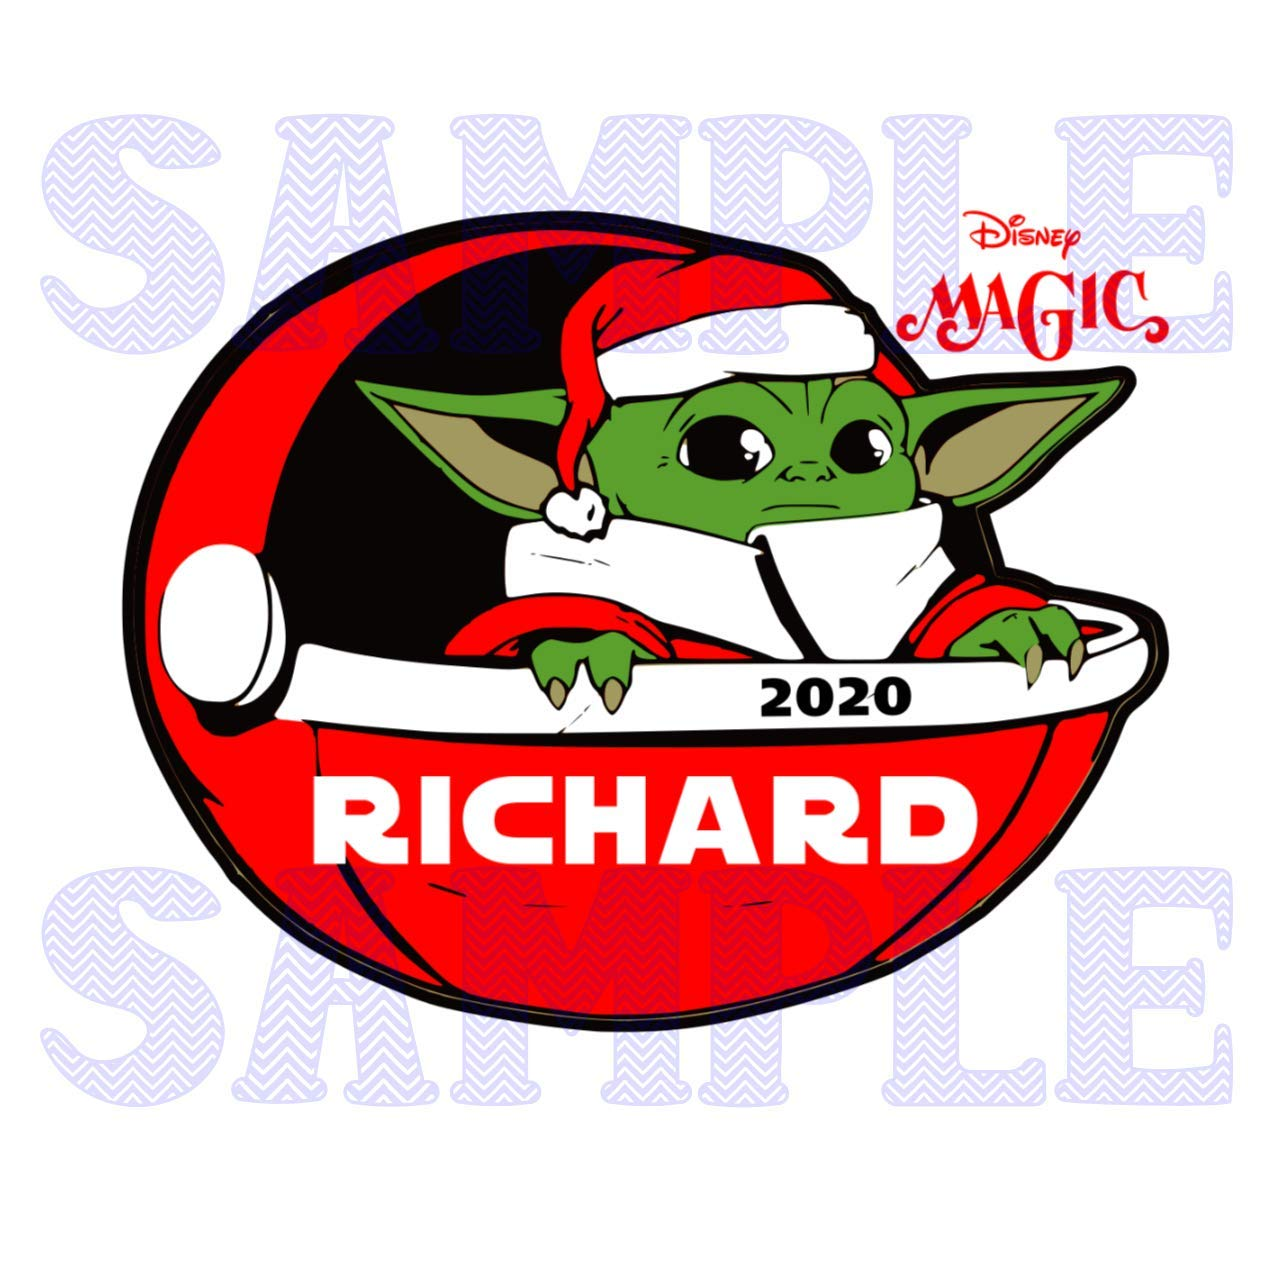 Star Wars the Mandalorian Baby Yoda Magnet. Baby Yoda Star Wars Personalized Christmas Cabin Door Magnet Disney Cruise Jedi Magnet for Stateroom Door